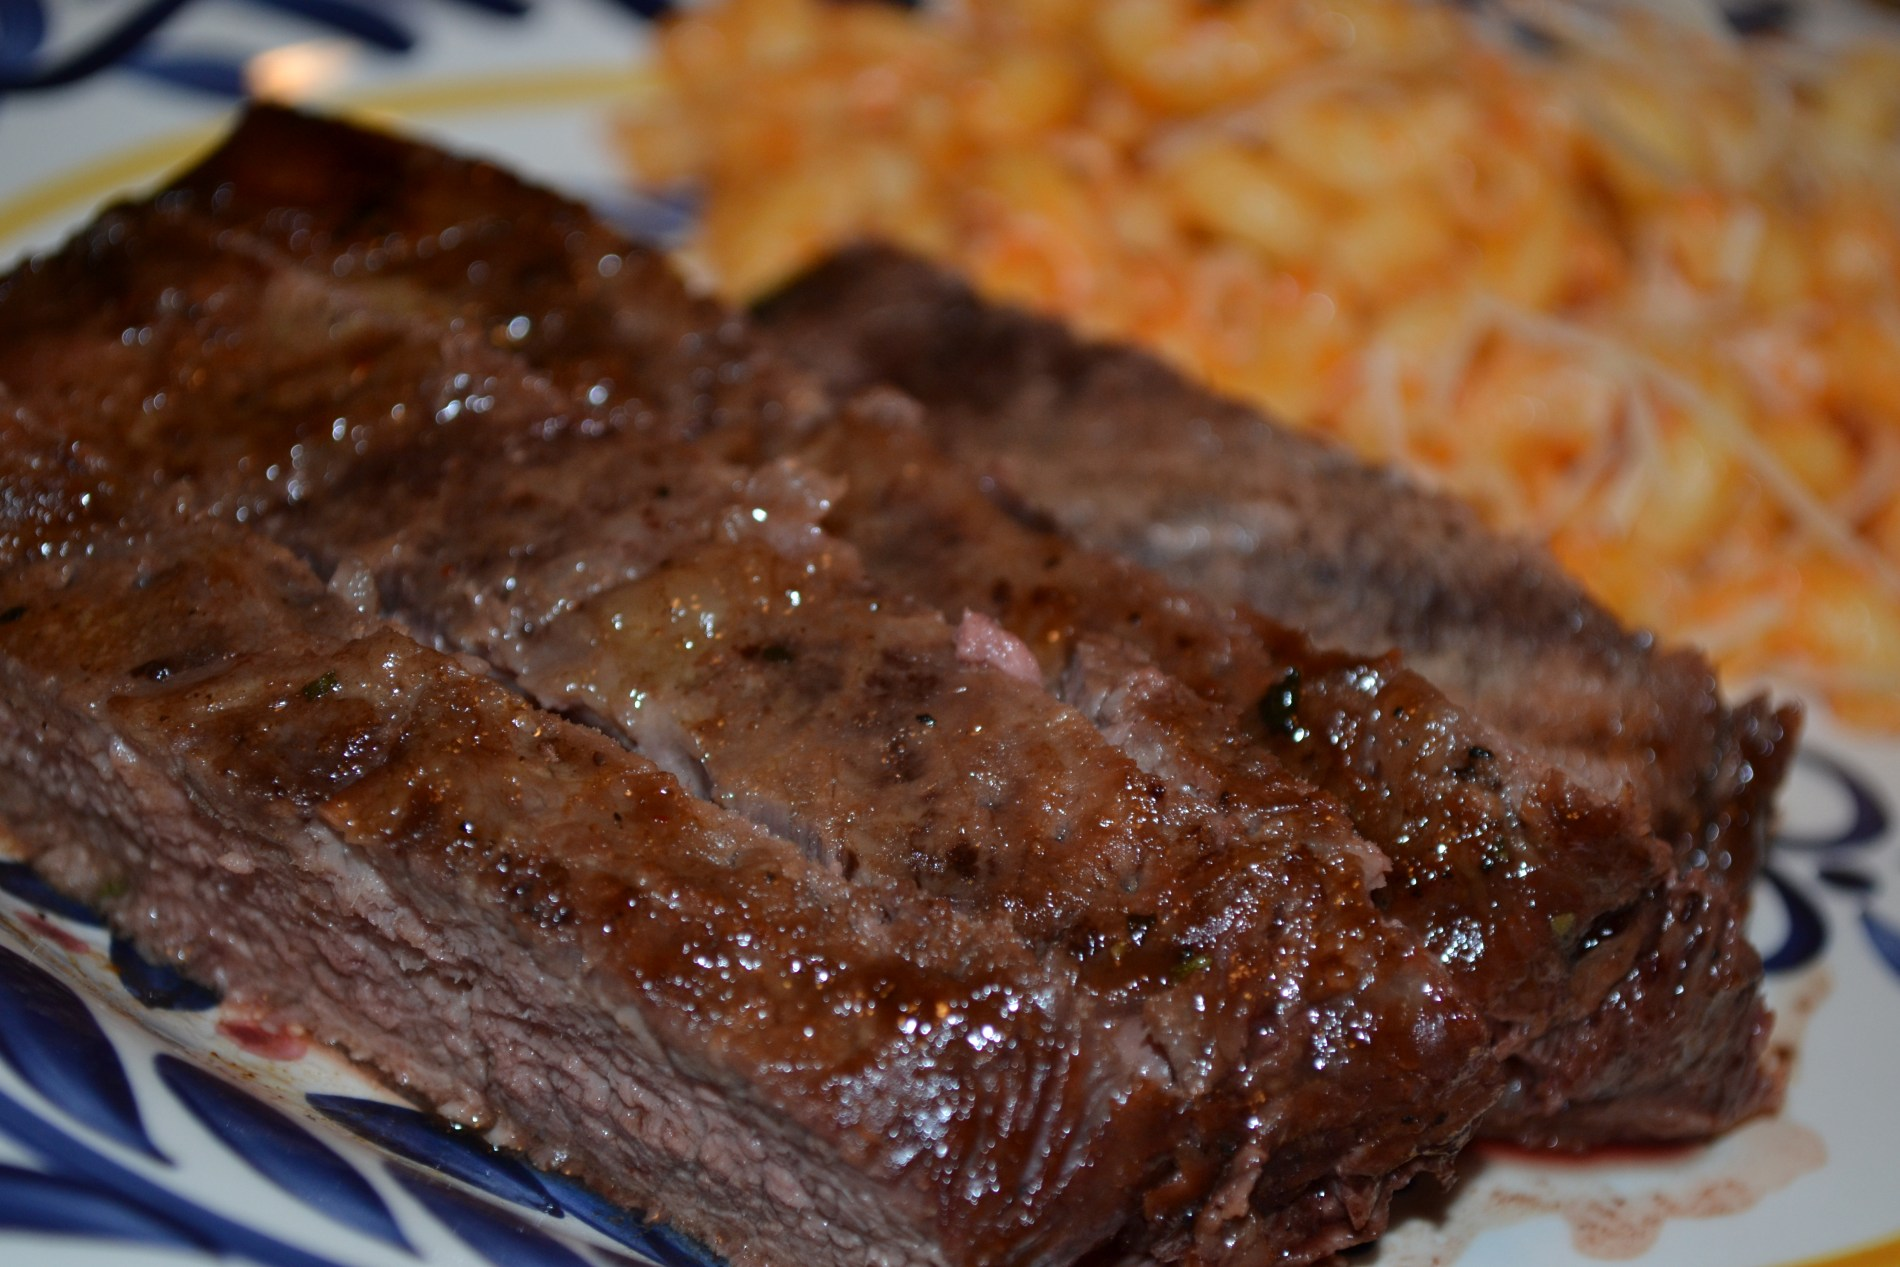 This steak marinade recipe is very good, it has a sweet and oily taste to it.